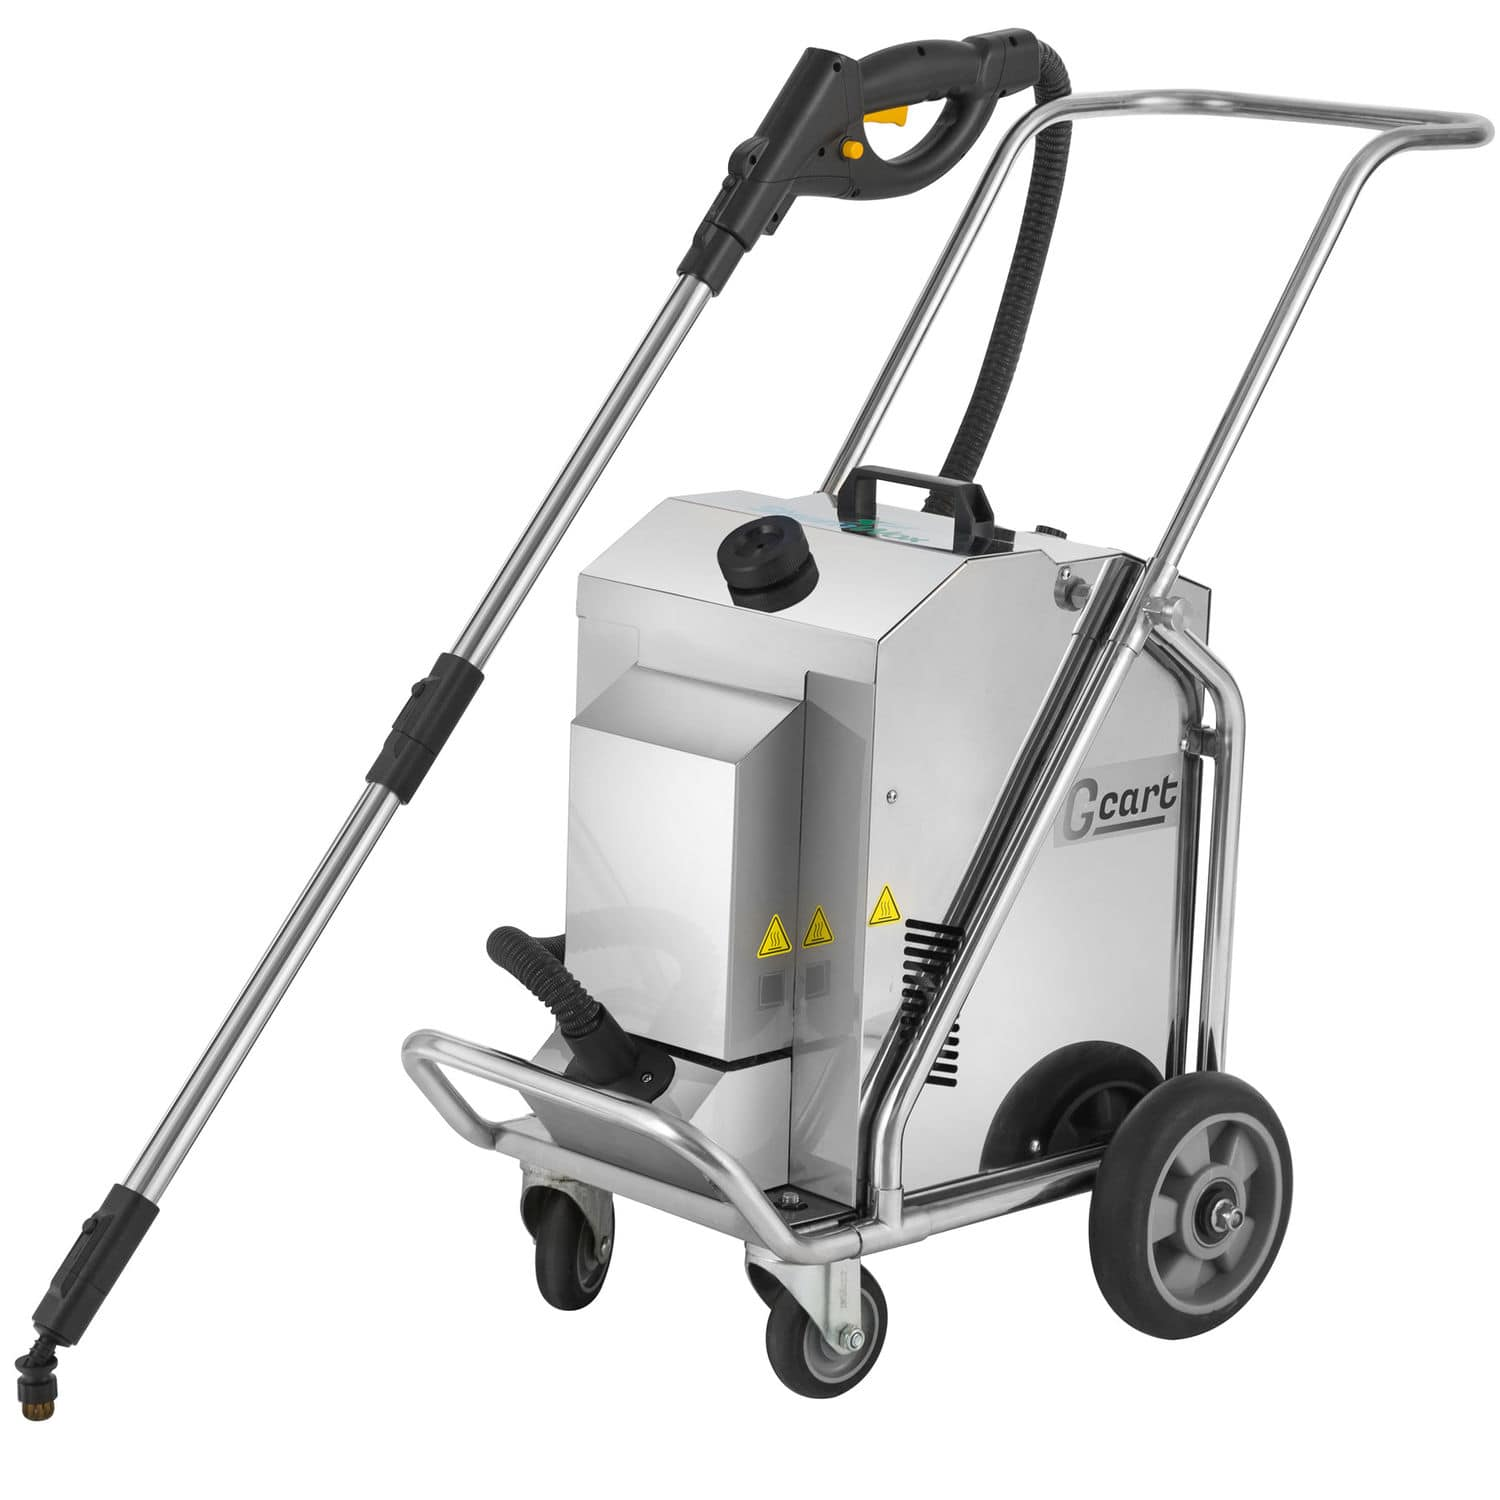 Commercial Steam Cleaner G Cart Alpina Steam Cleaning Machines